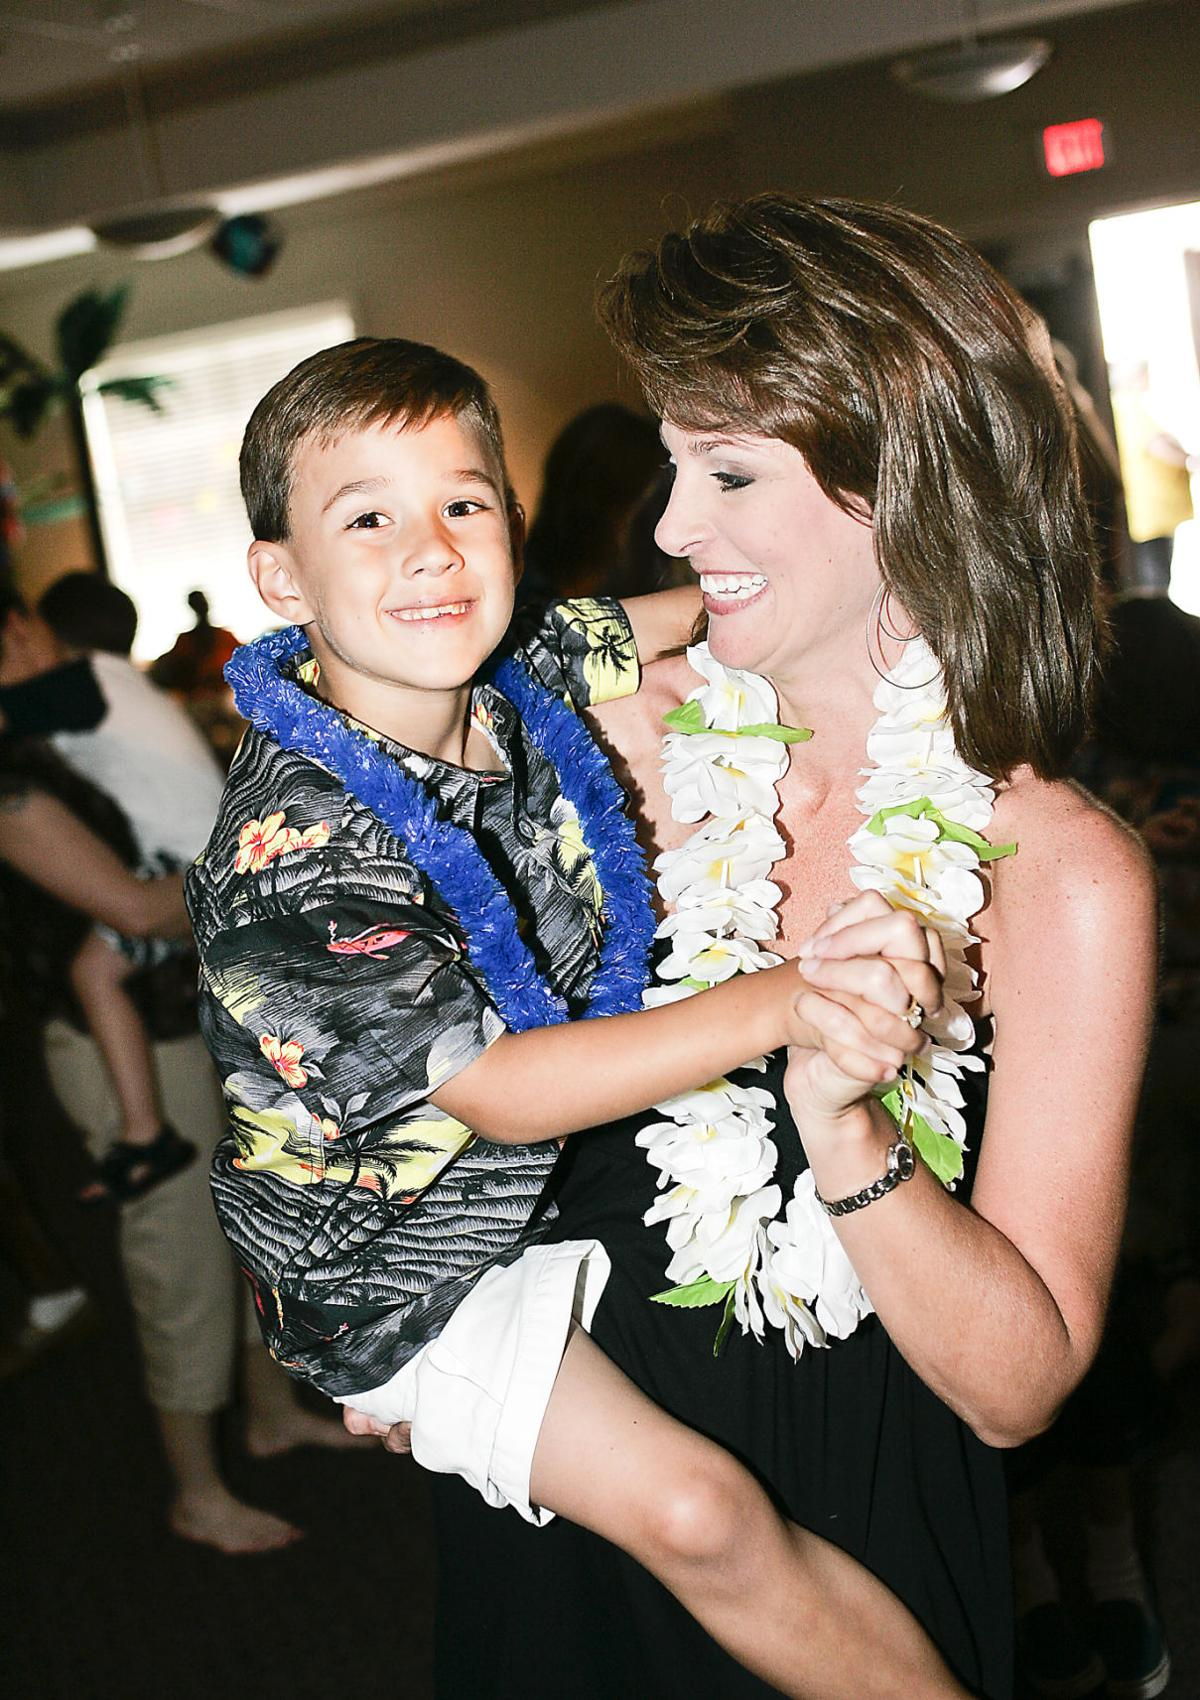 Mothers sons dance the night away Local News